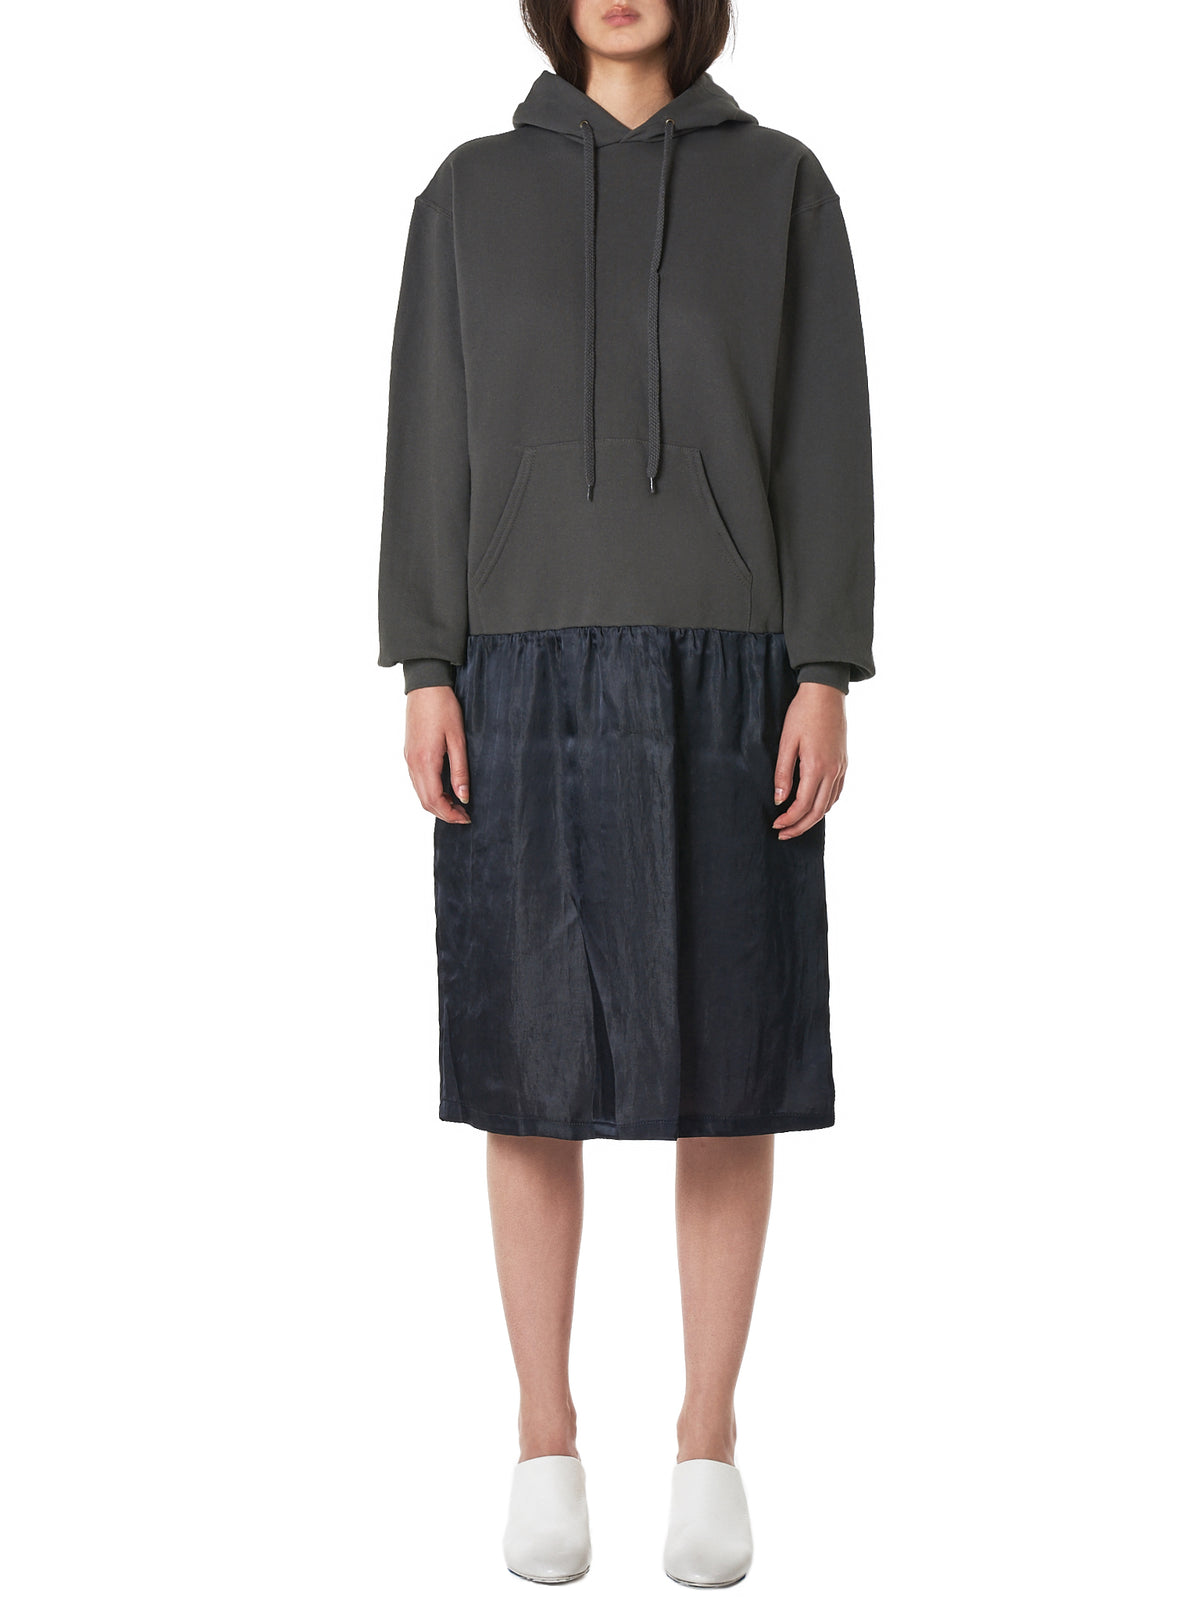 Spliced Hooded Dress (HOODIE-LU3510-DARK-GREY-BLACK)